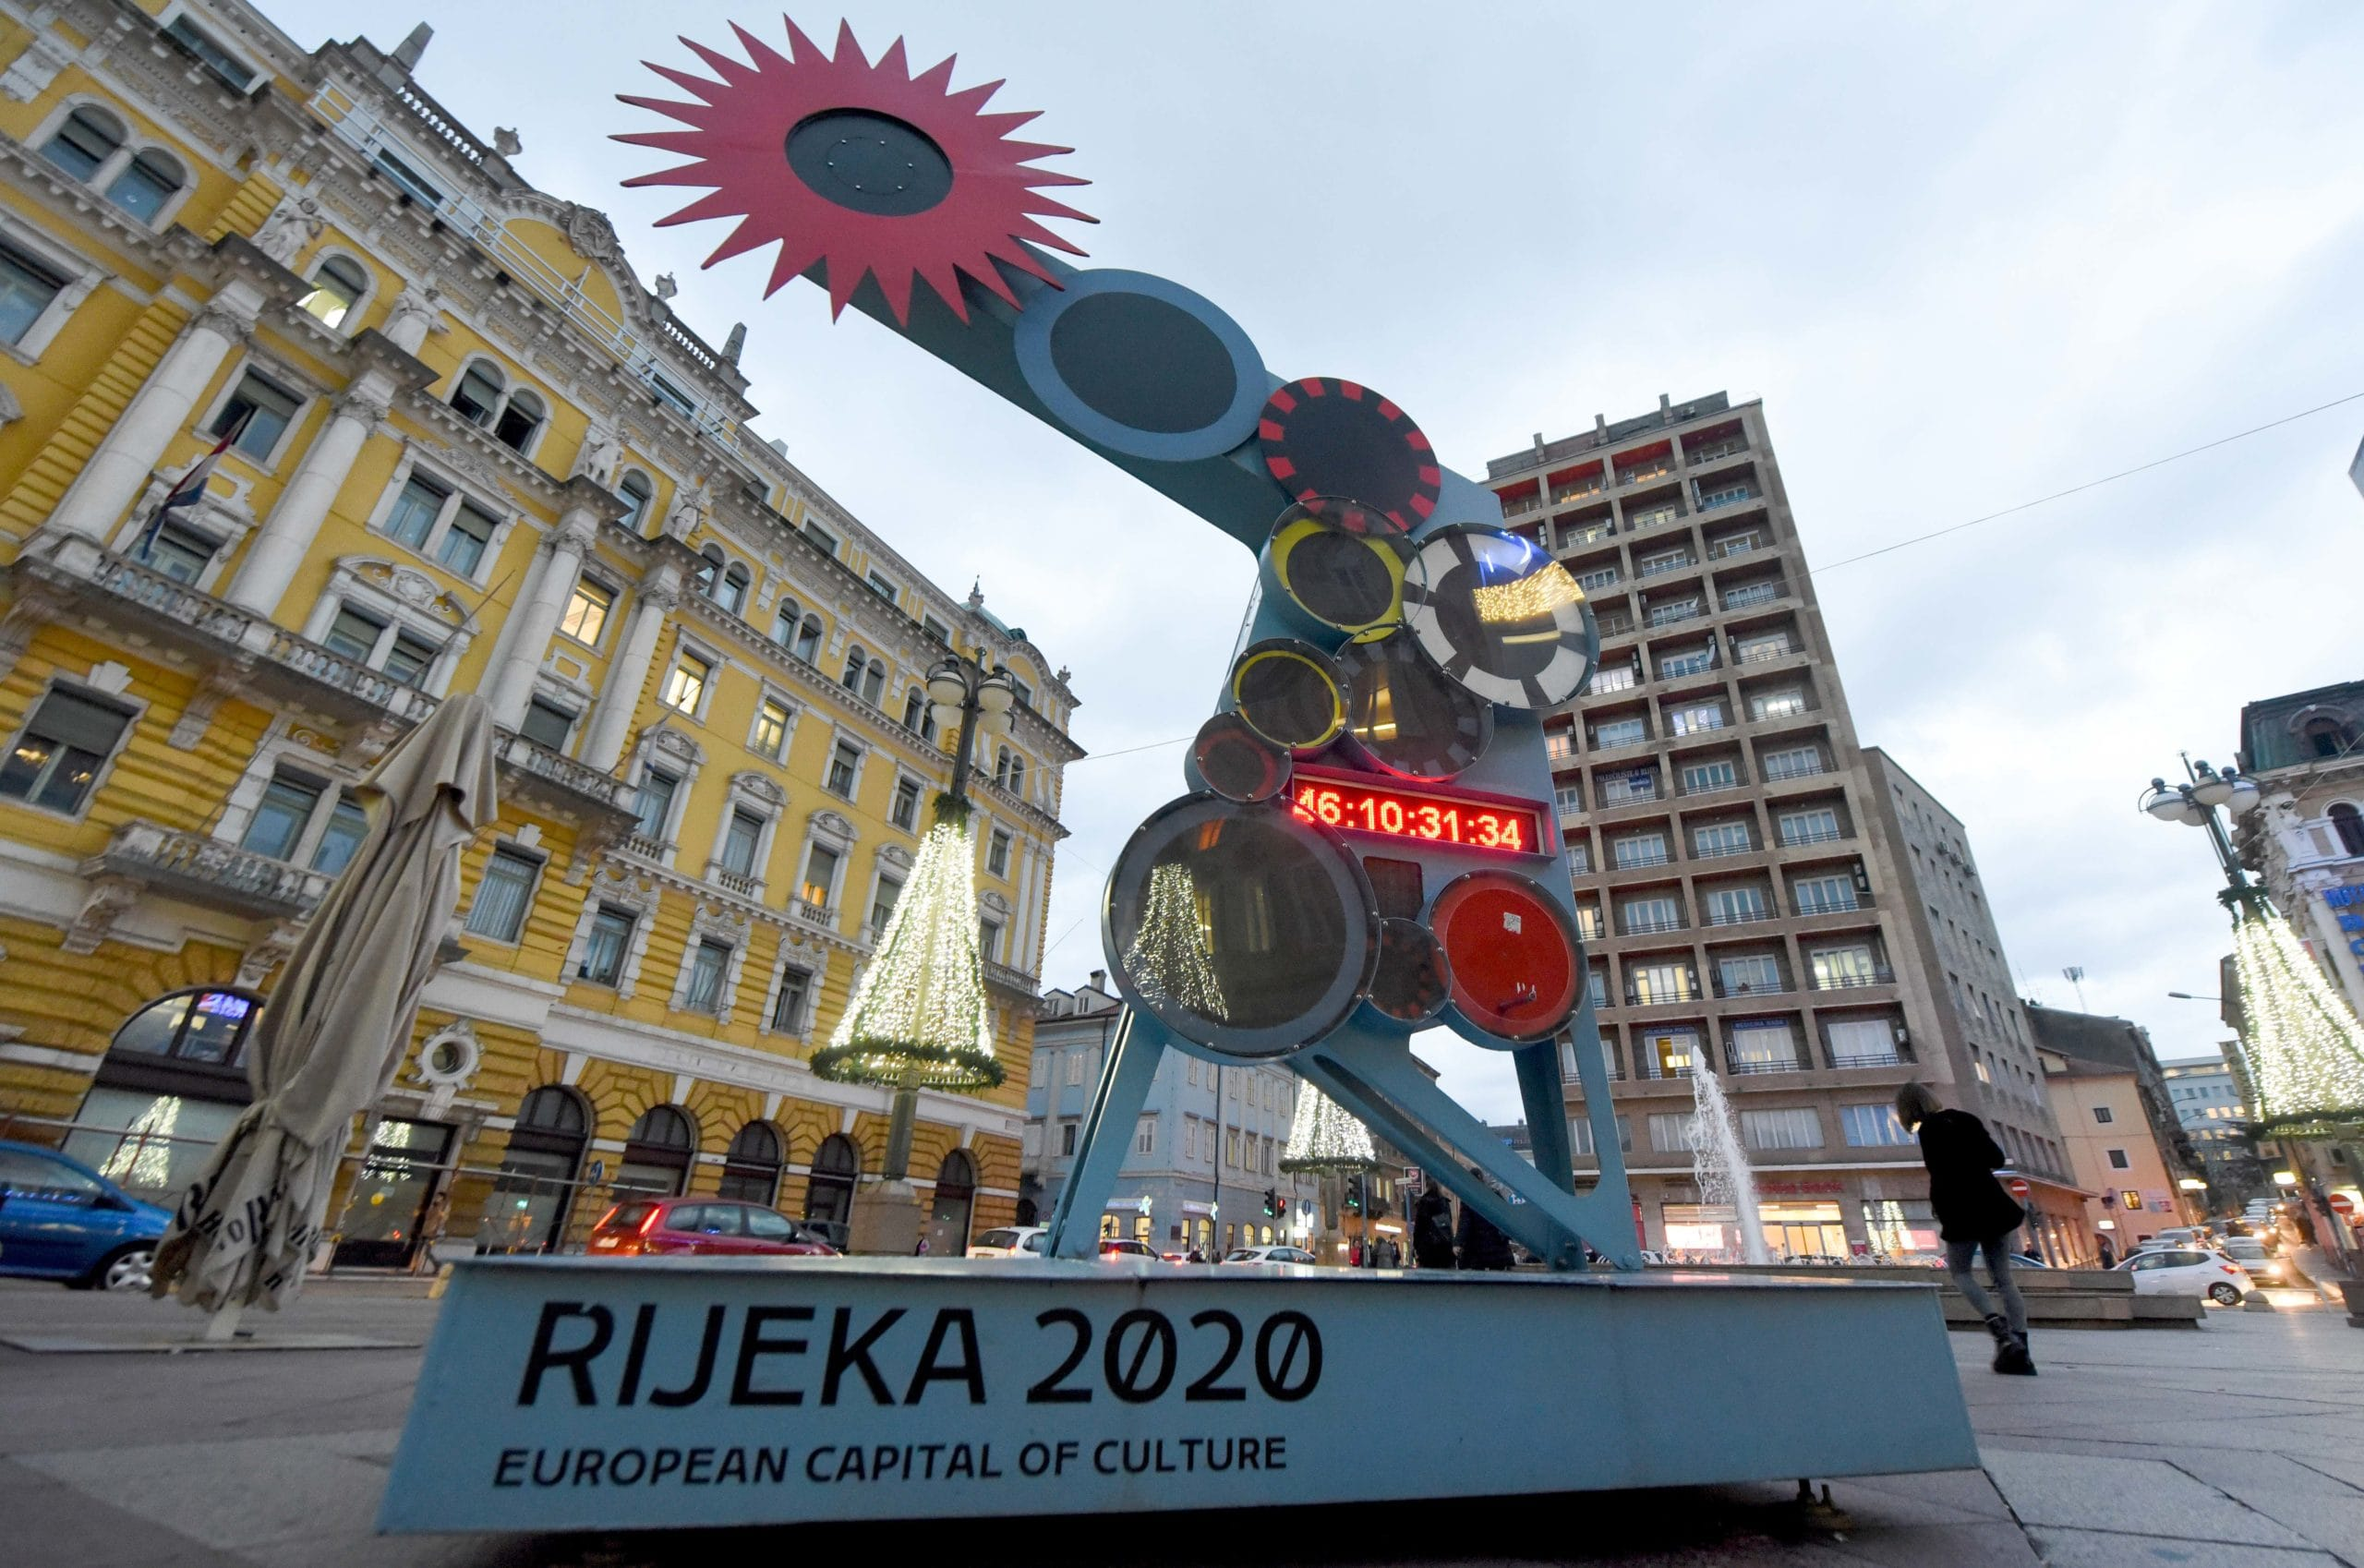 Picture taken on December 18, 2019, shows watch counting down to the end of the year in Rijeka. City of Rijeka has been named European Capital of Culture 2020.